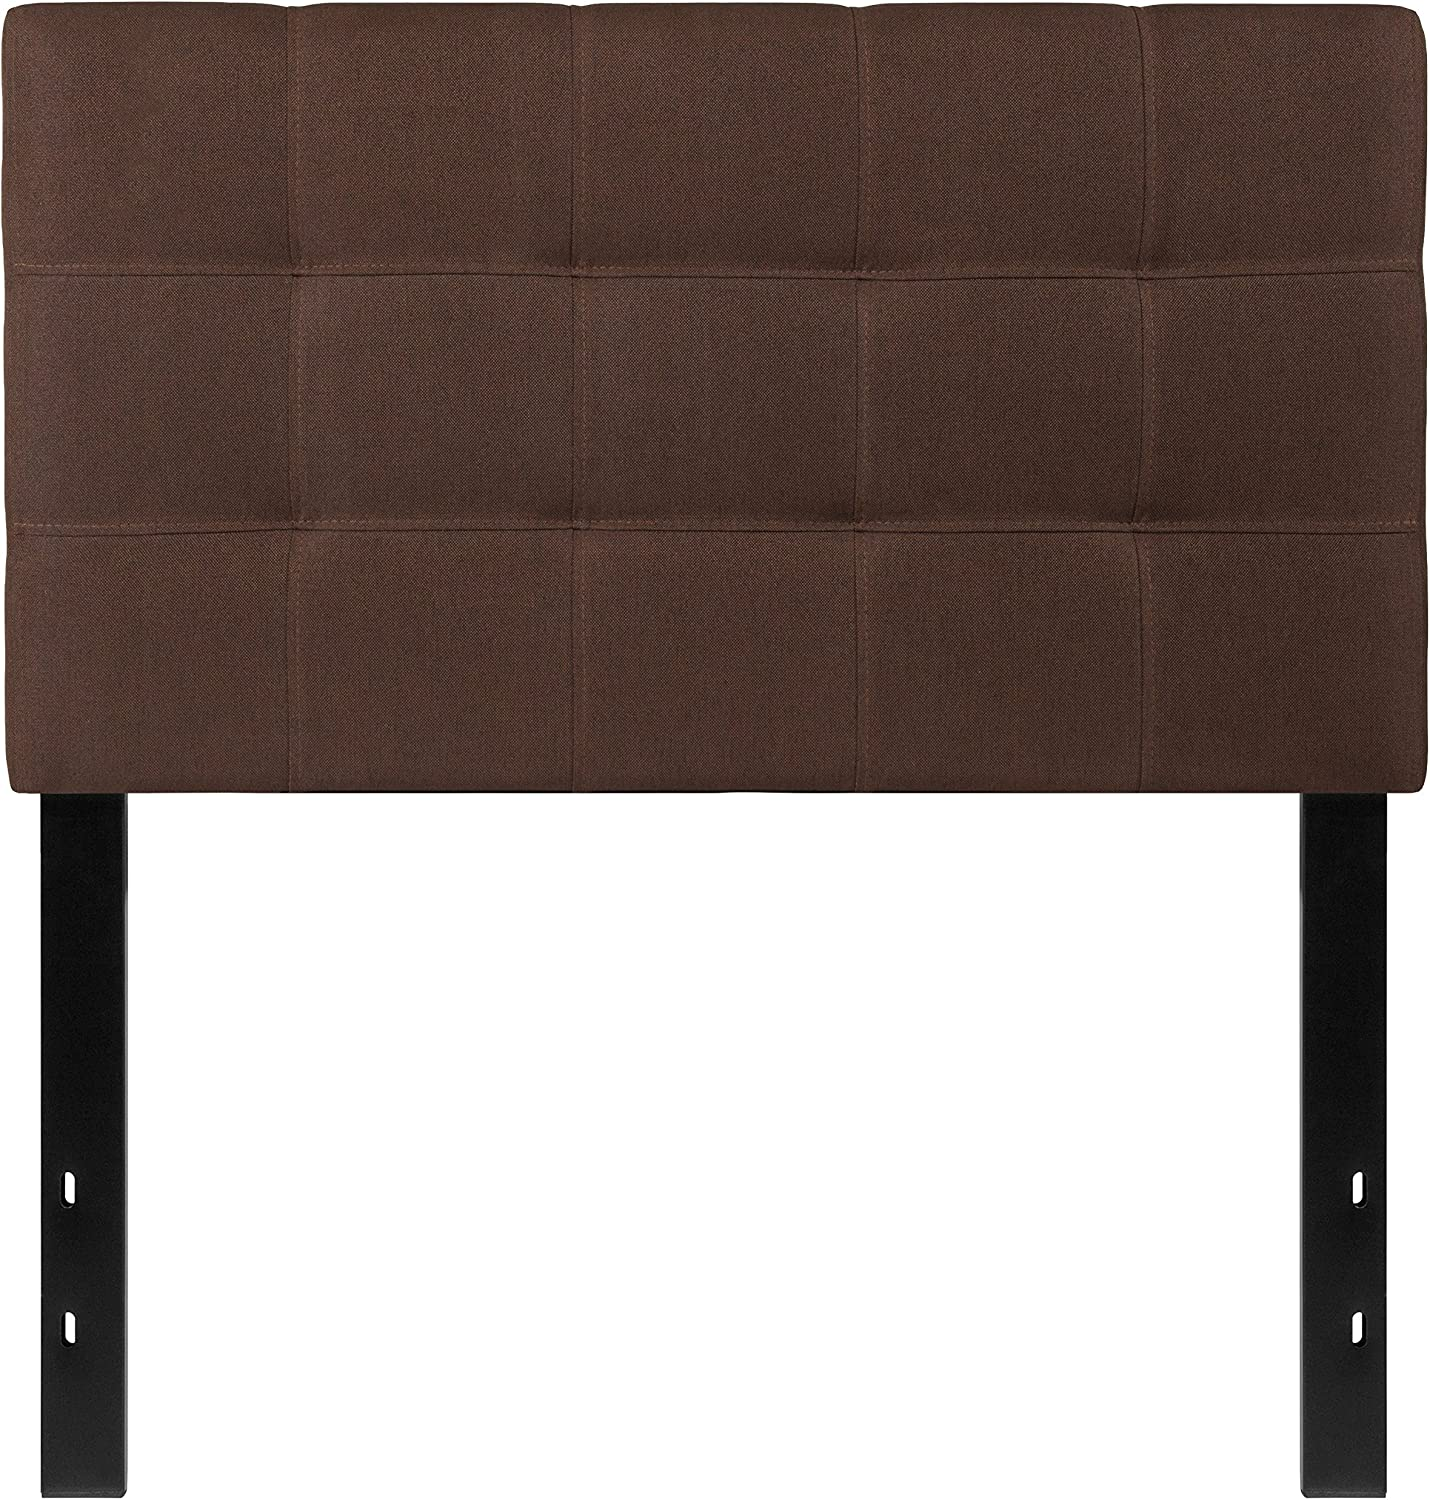 Flash Furniture Bedford Tufted Upholstered Twin Size Headboard in Dark Brown Fabric